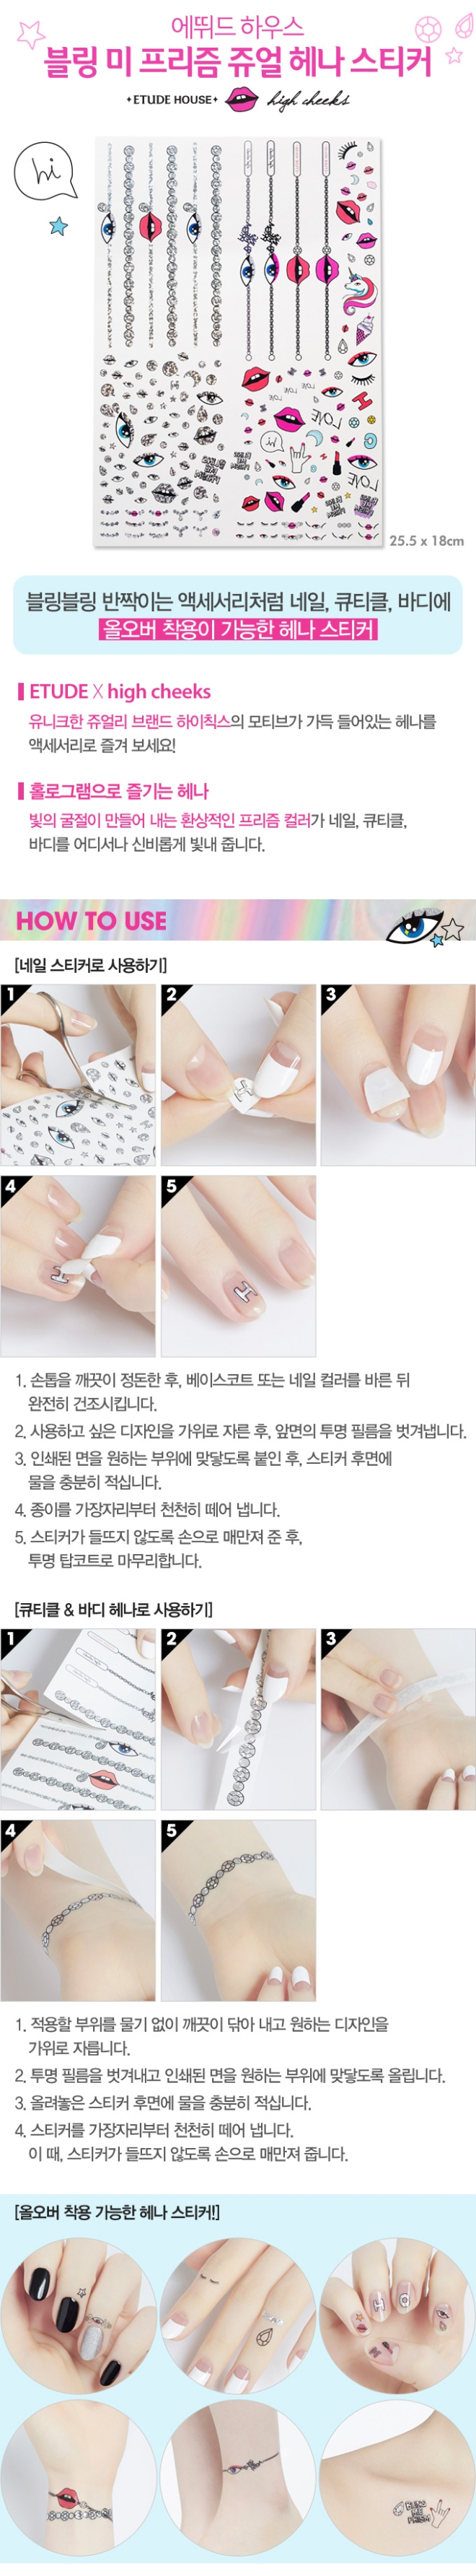 (Etude House x High Cheeks - Bling Me Prism Jewel Henna Stickers) Credit: Etude House Korea website